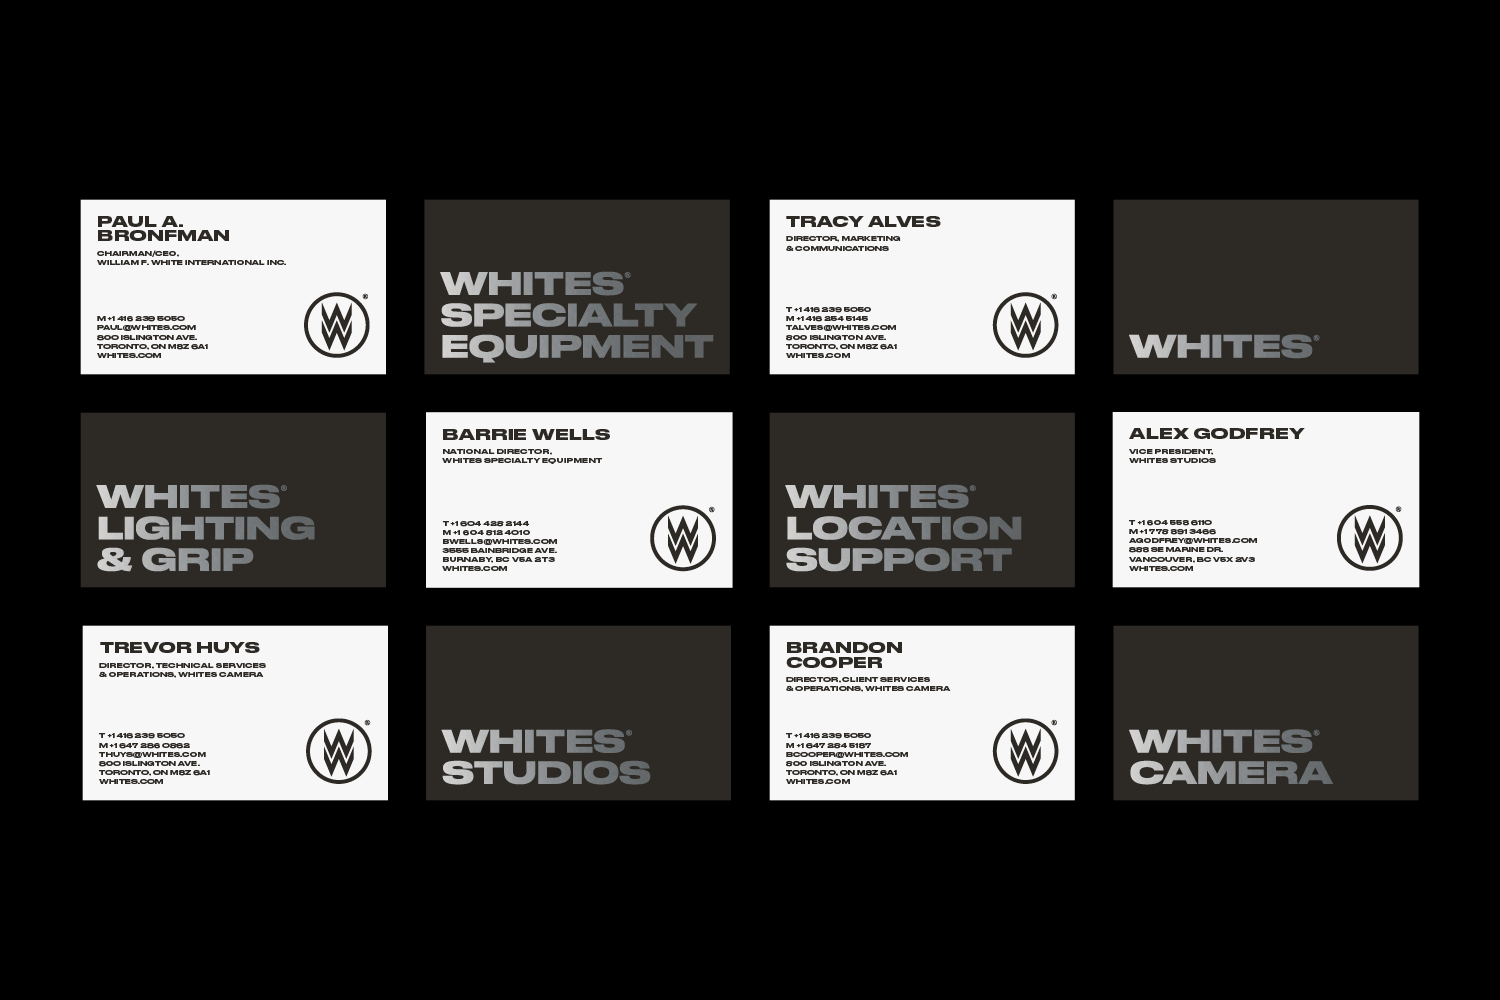 Whites-businesscard.jpg